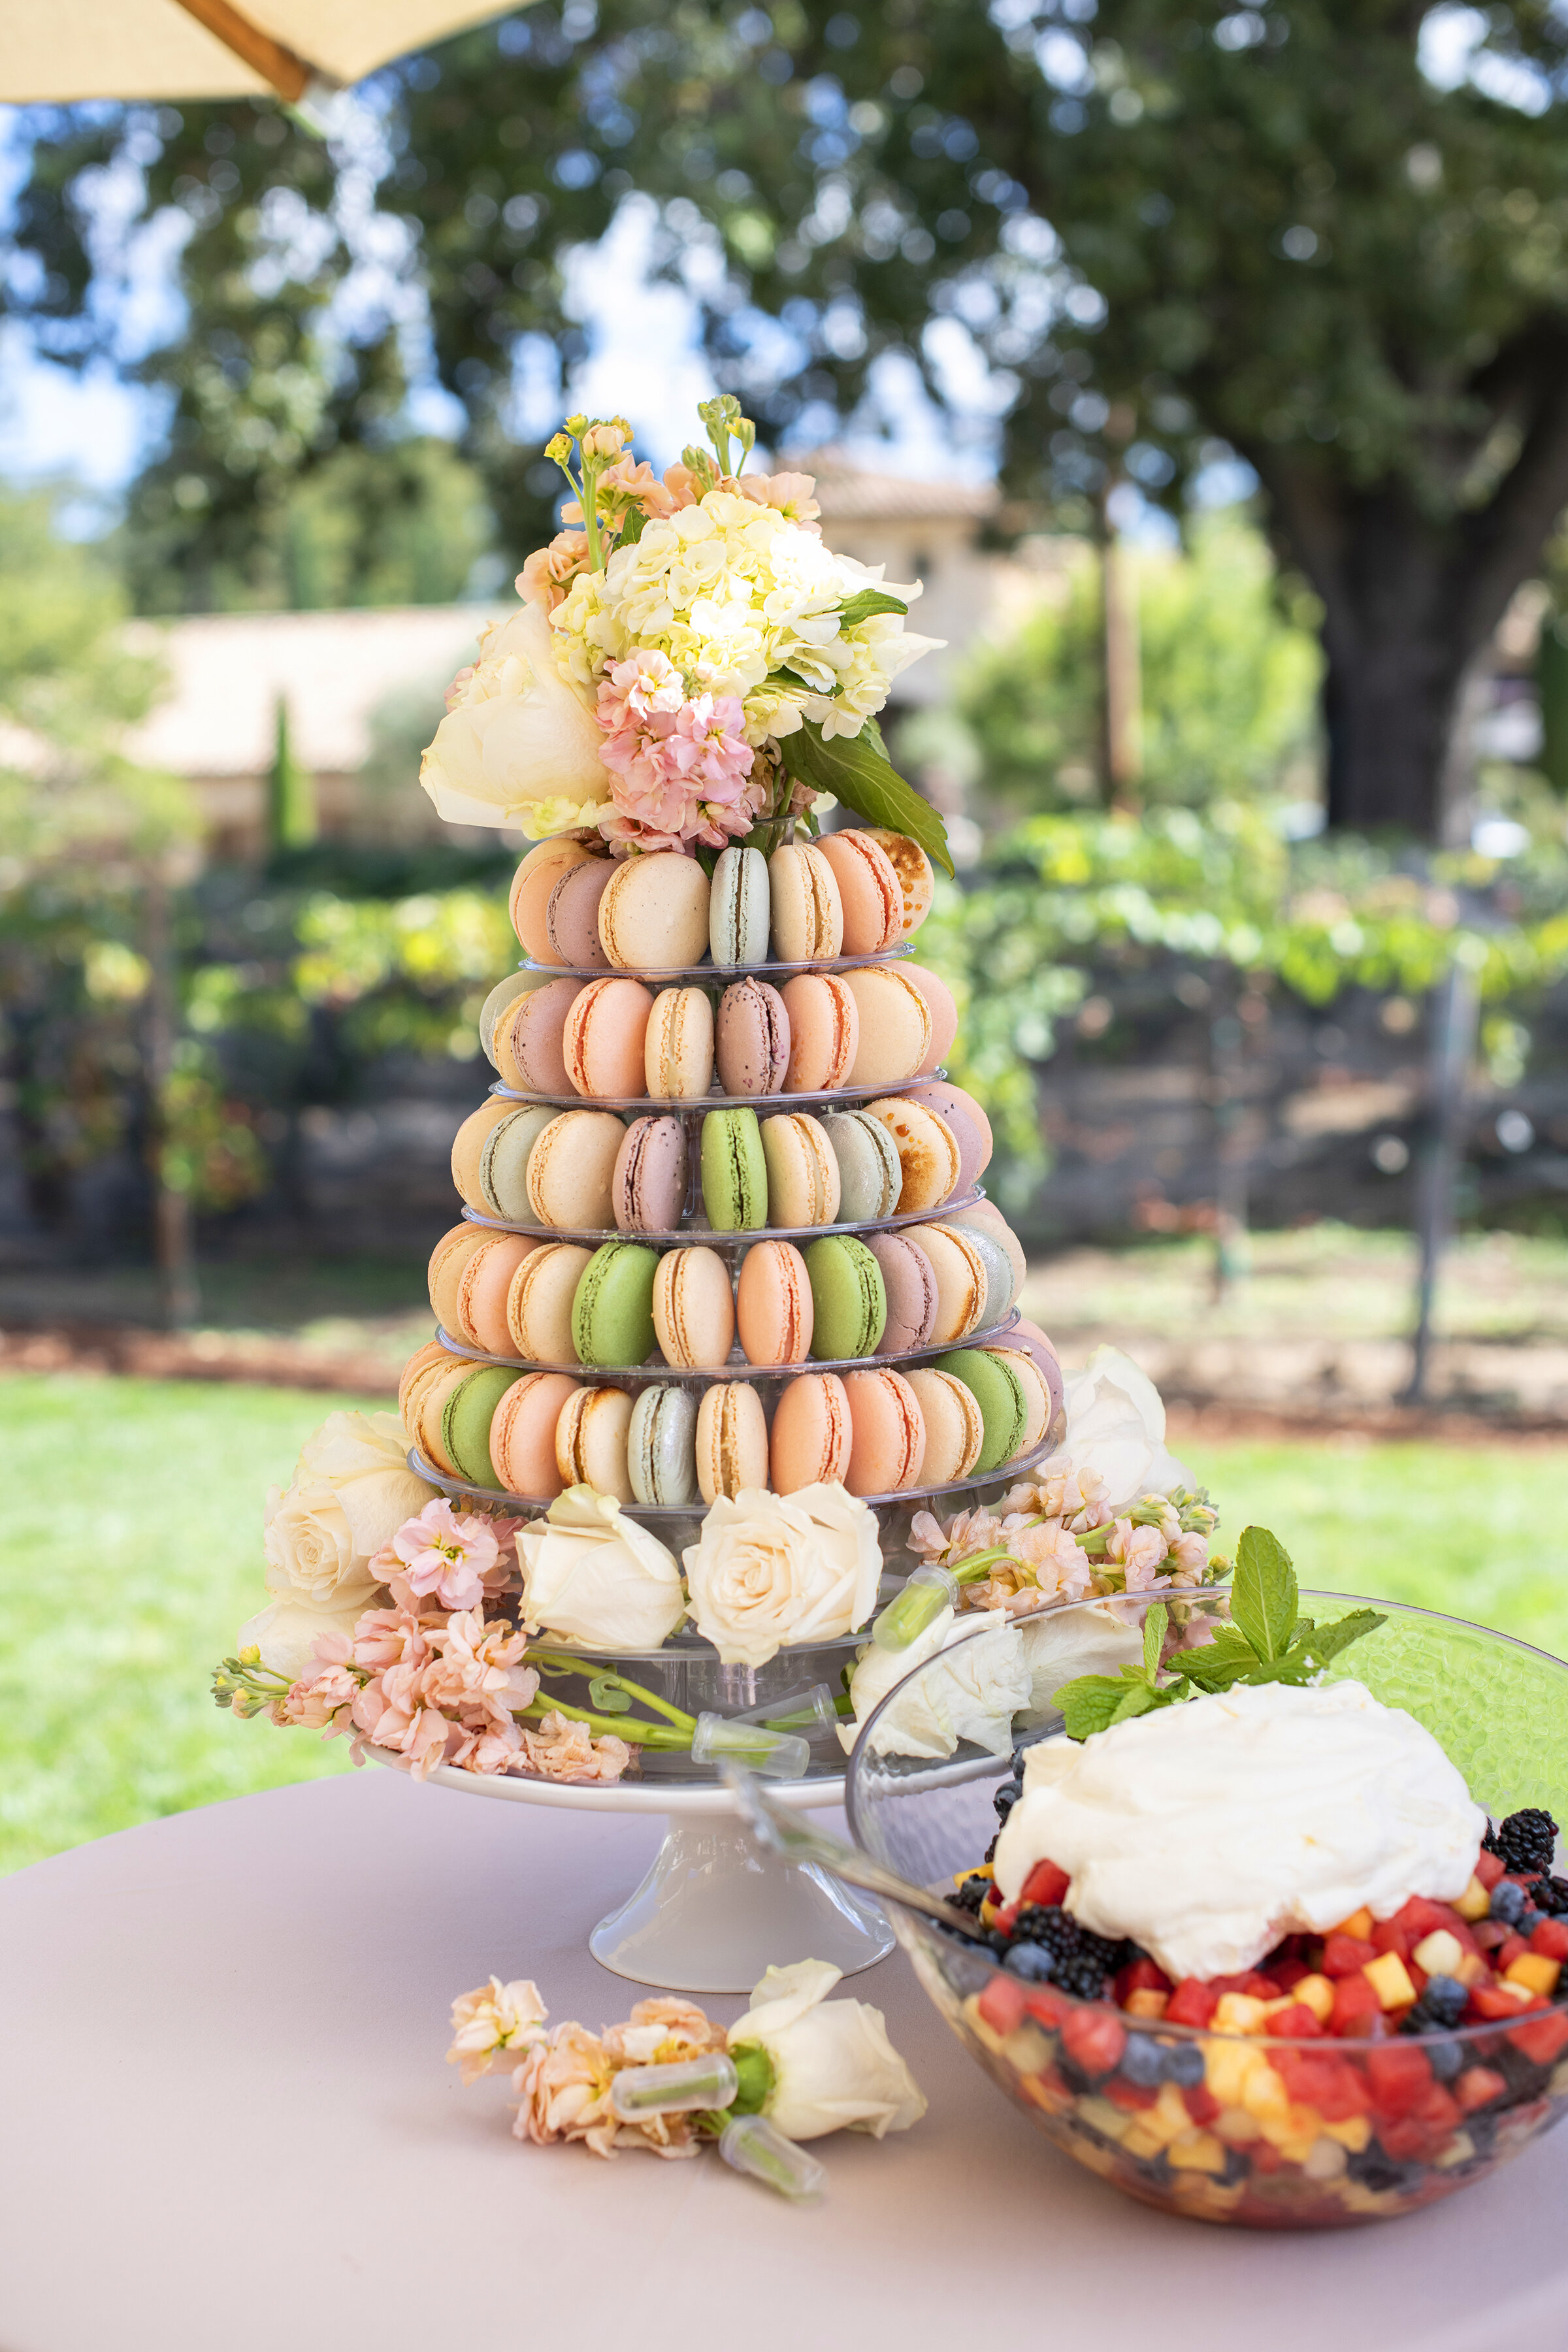 Fall Baby Shower: A fall inspired macaroon tower was the dessert attraction